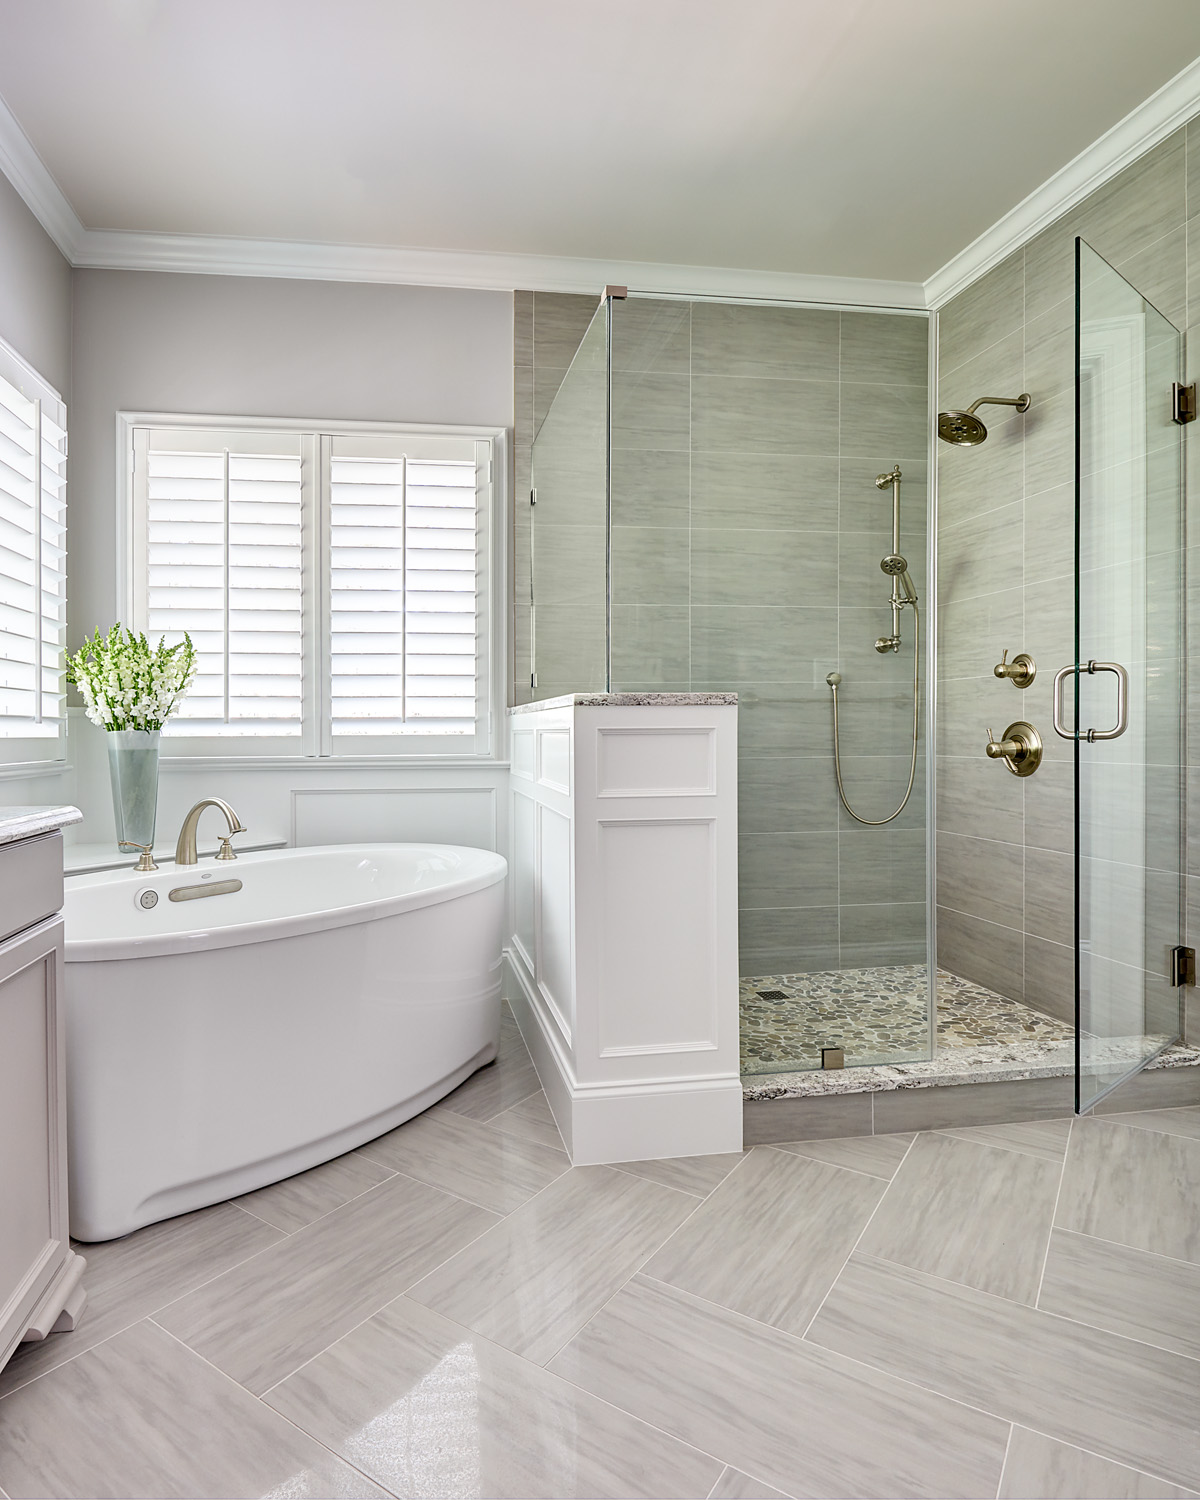 Master bathroom remodel with corner tub and shower with wainscoting